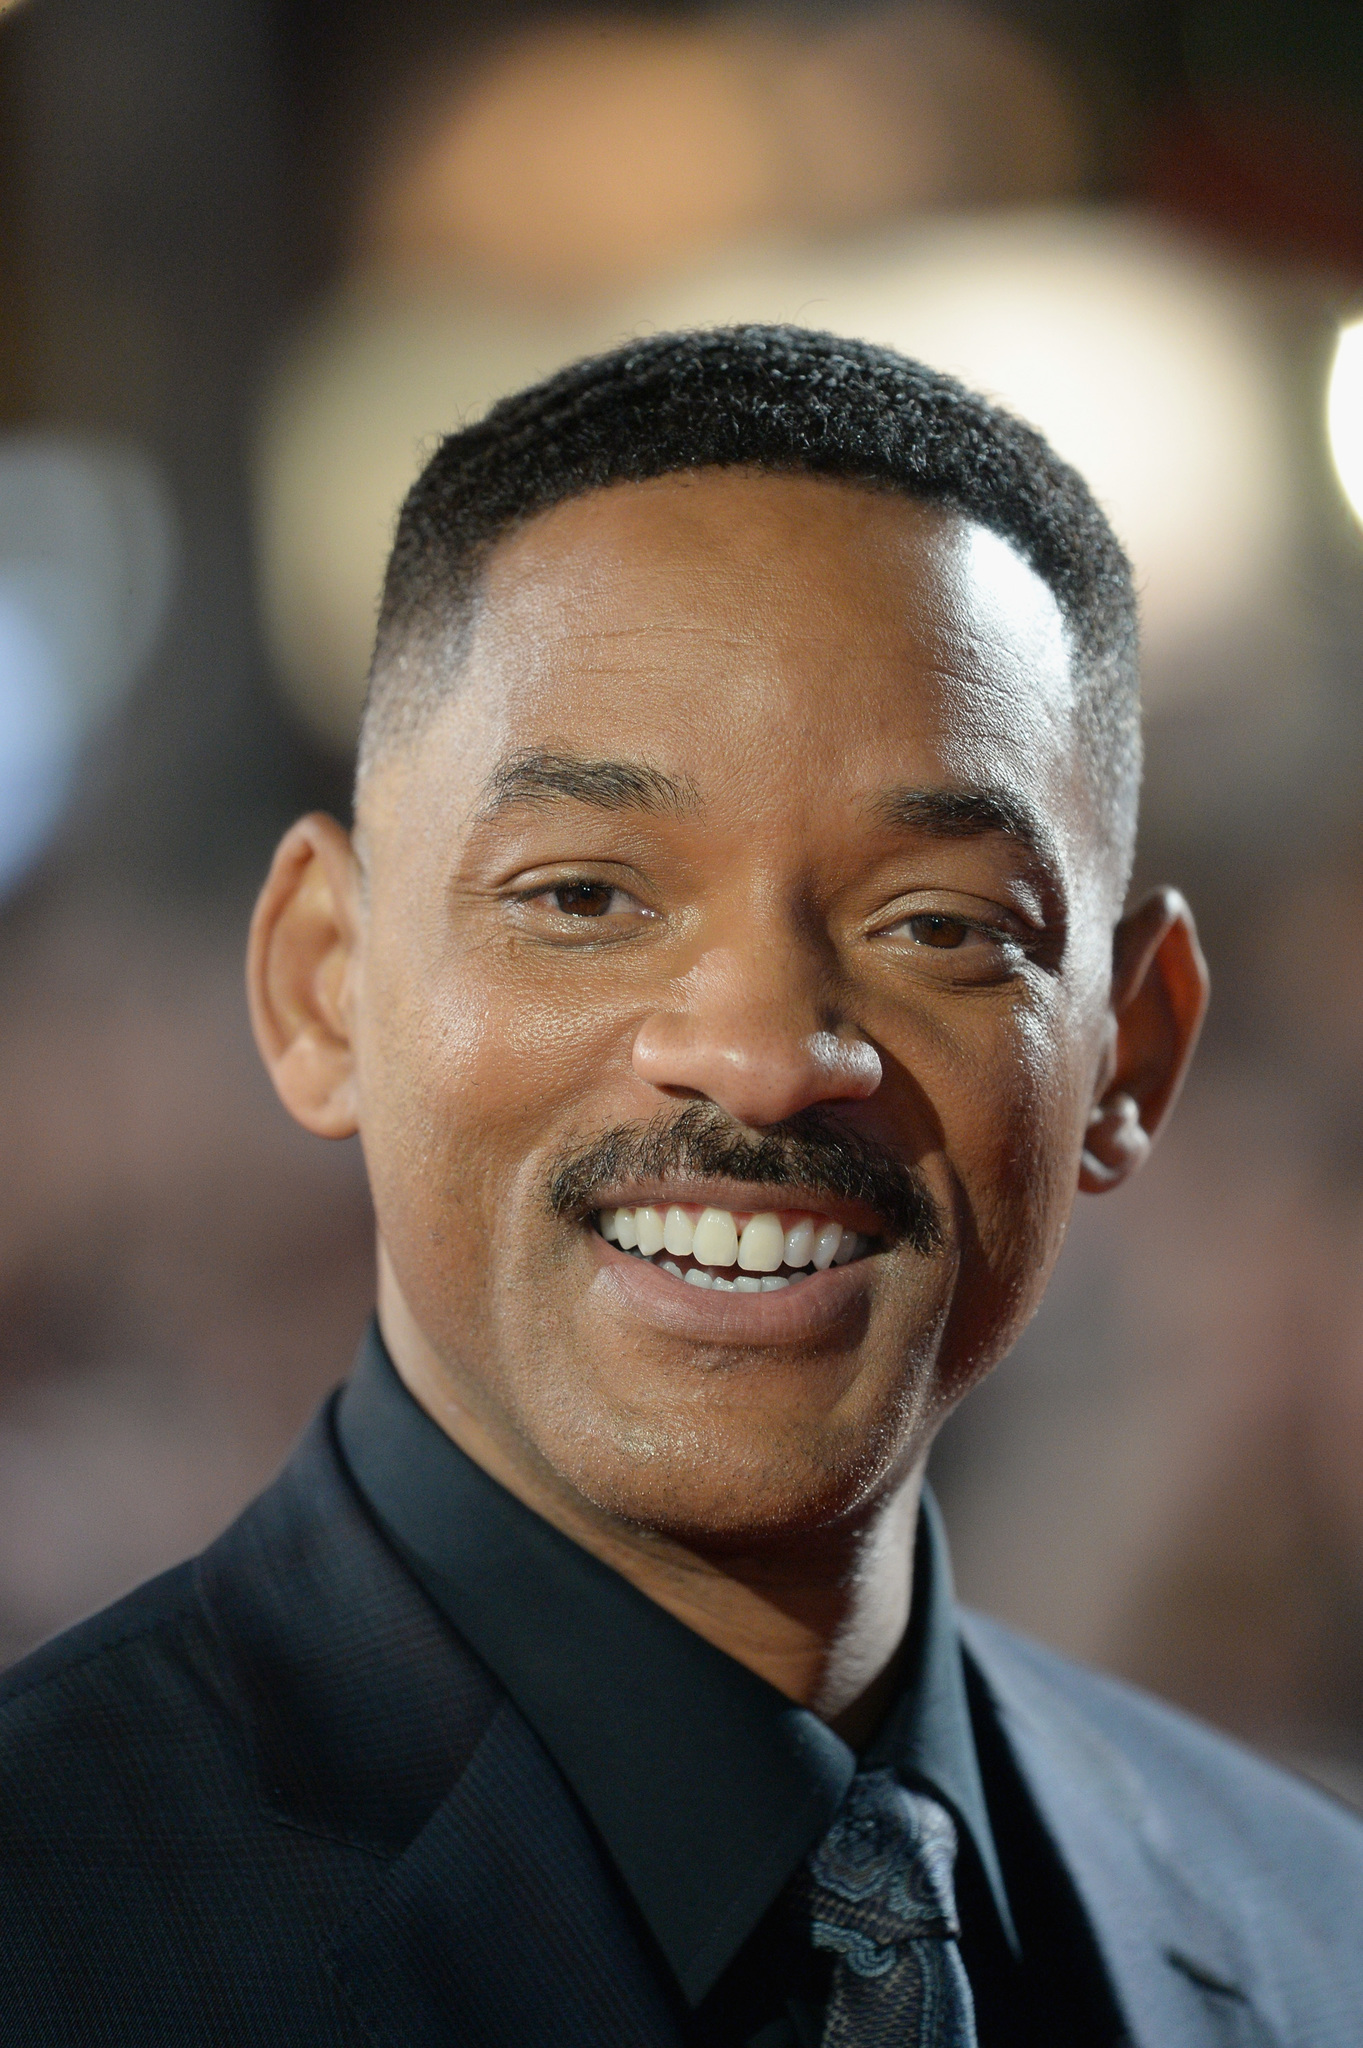 Will Smith at an event for Collateral Beauty (2016)